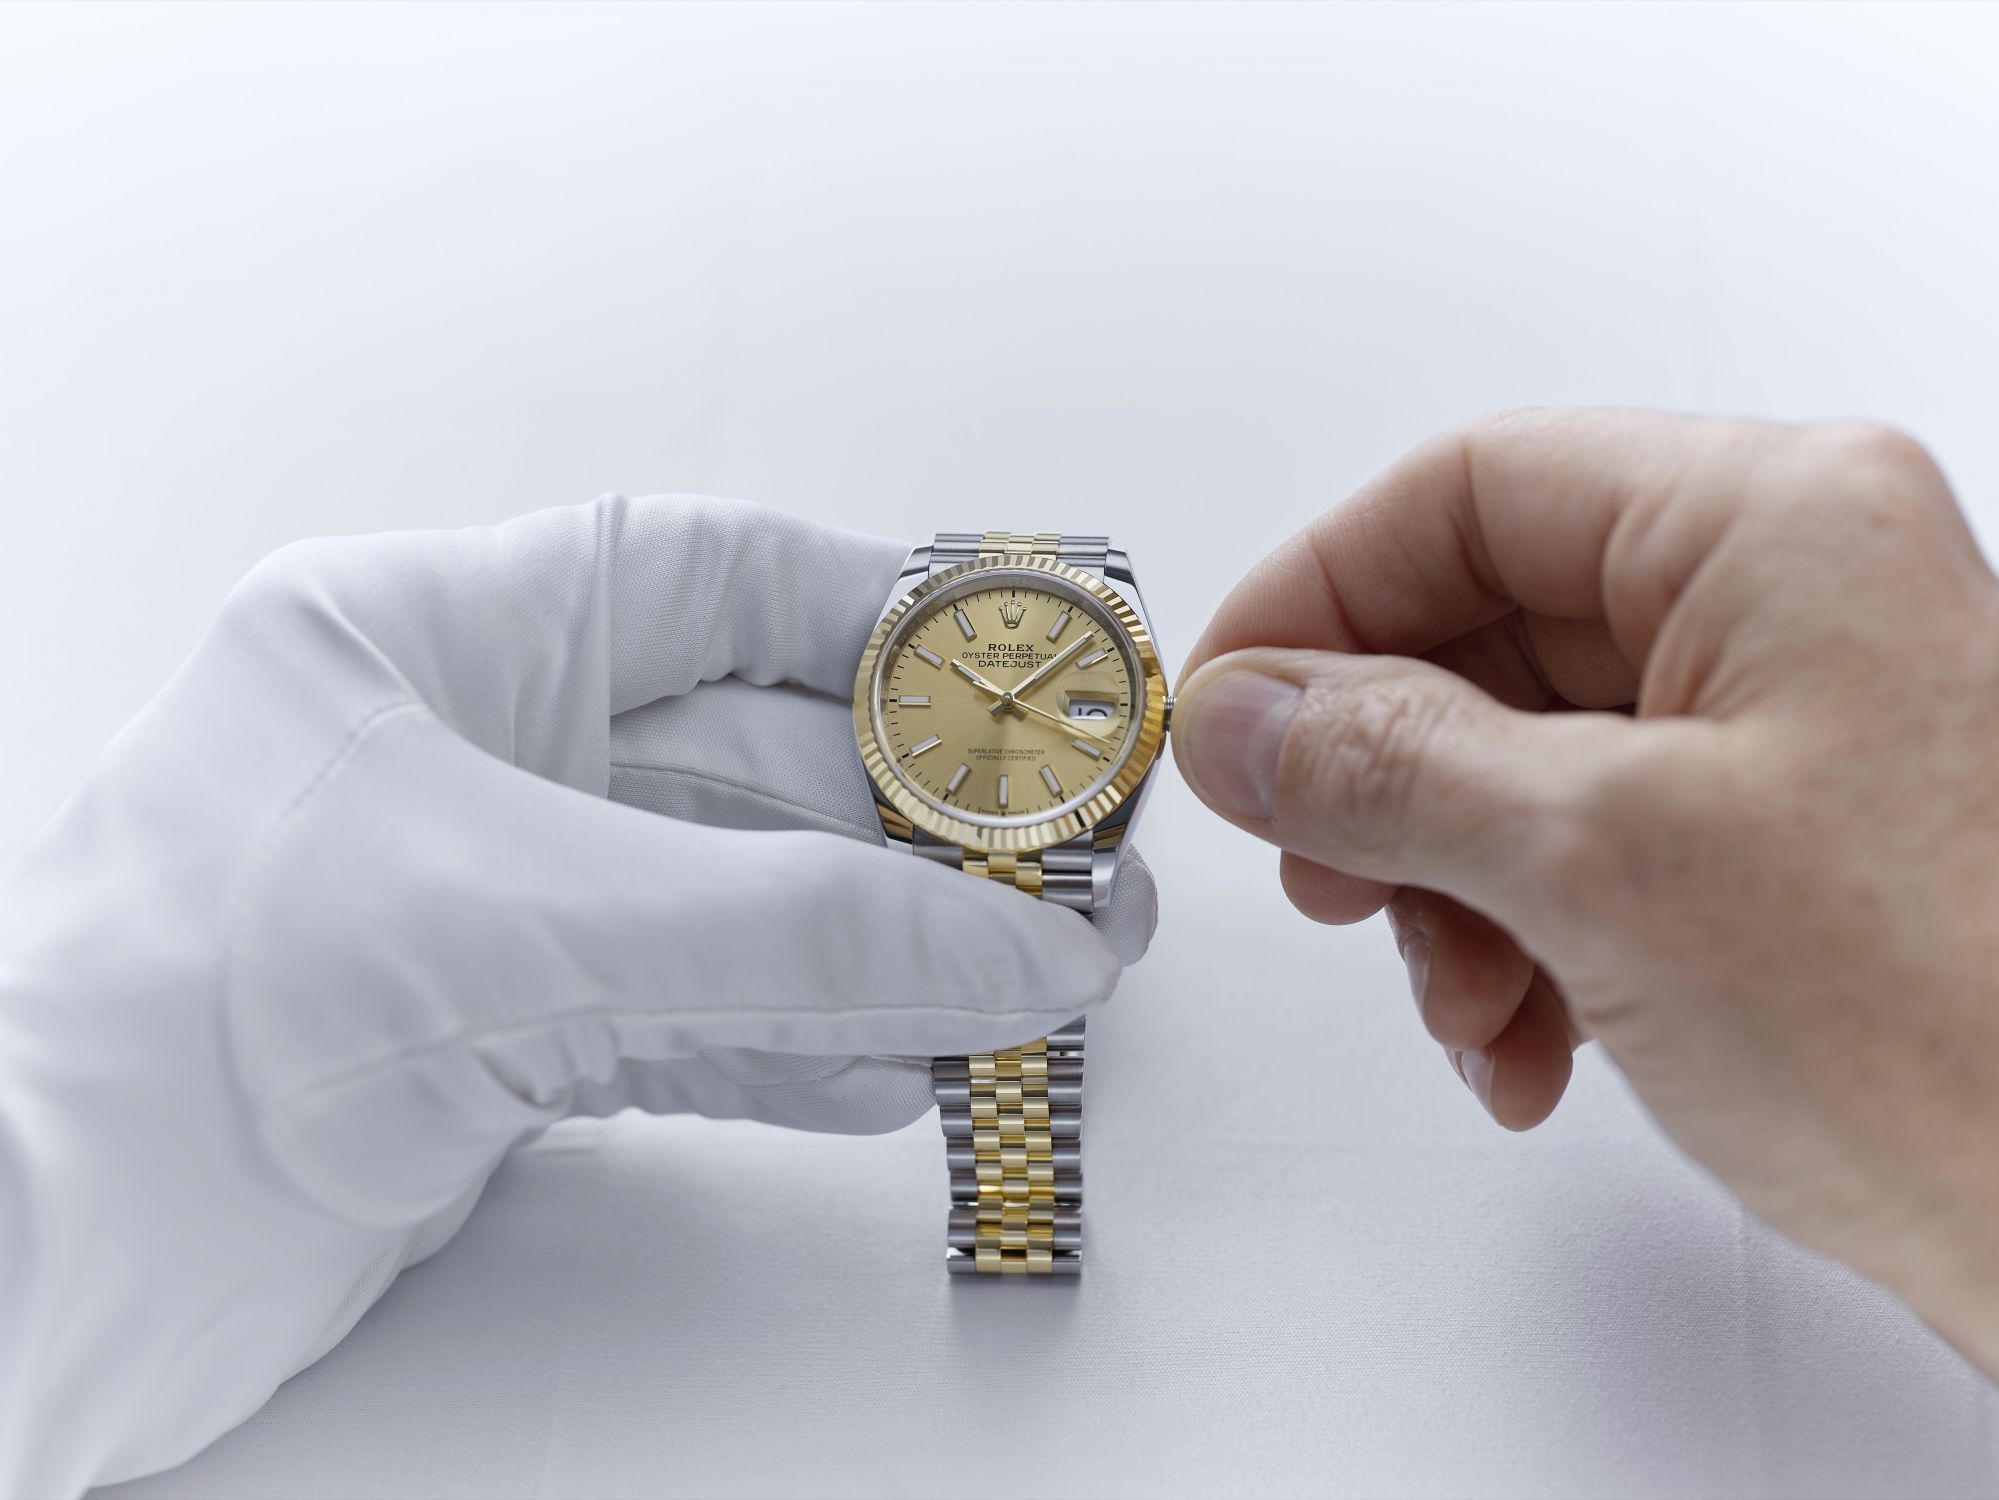 Rolex World Service Maintains And Keeps Your Watch In Top-Notch Condition